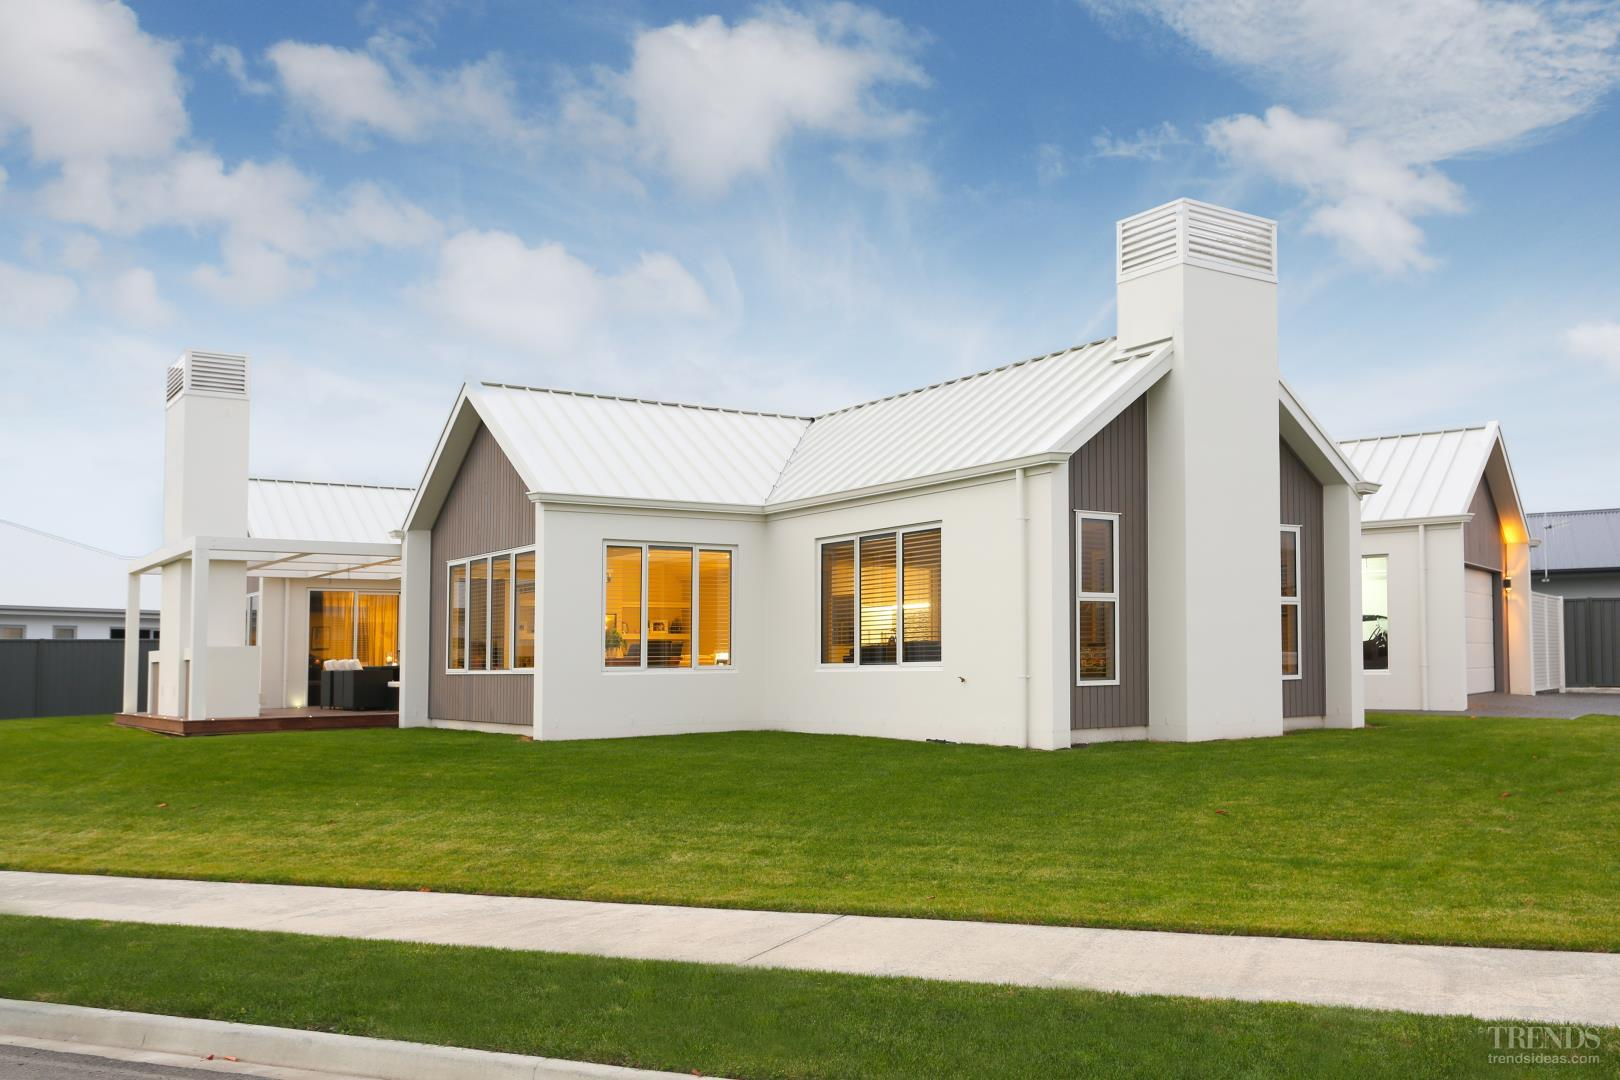 pavilion style house with four end gables has plenty of